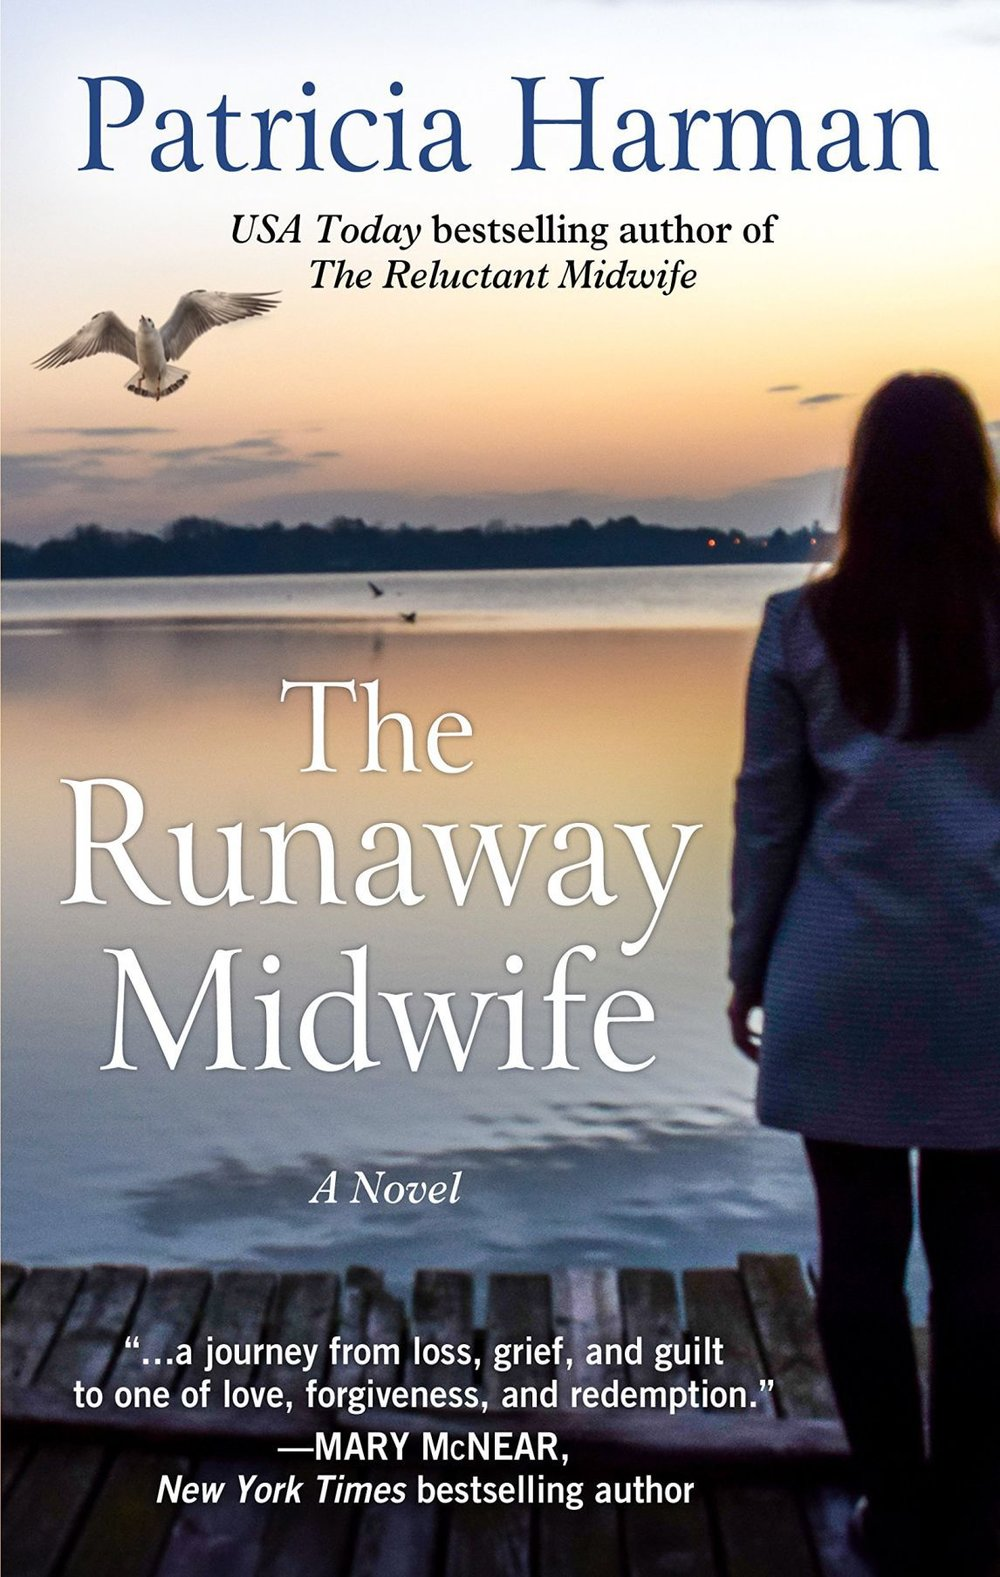 The Runaway Midwife by Patricia Harman.jpg